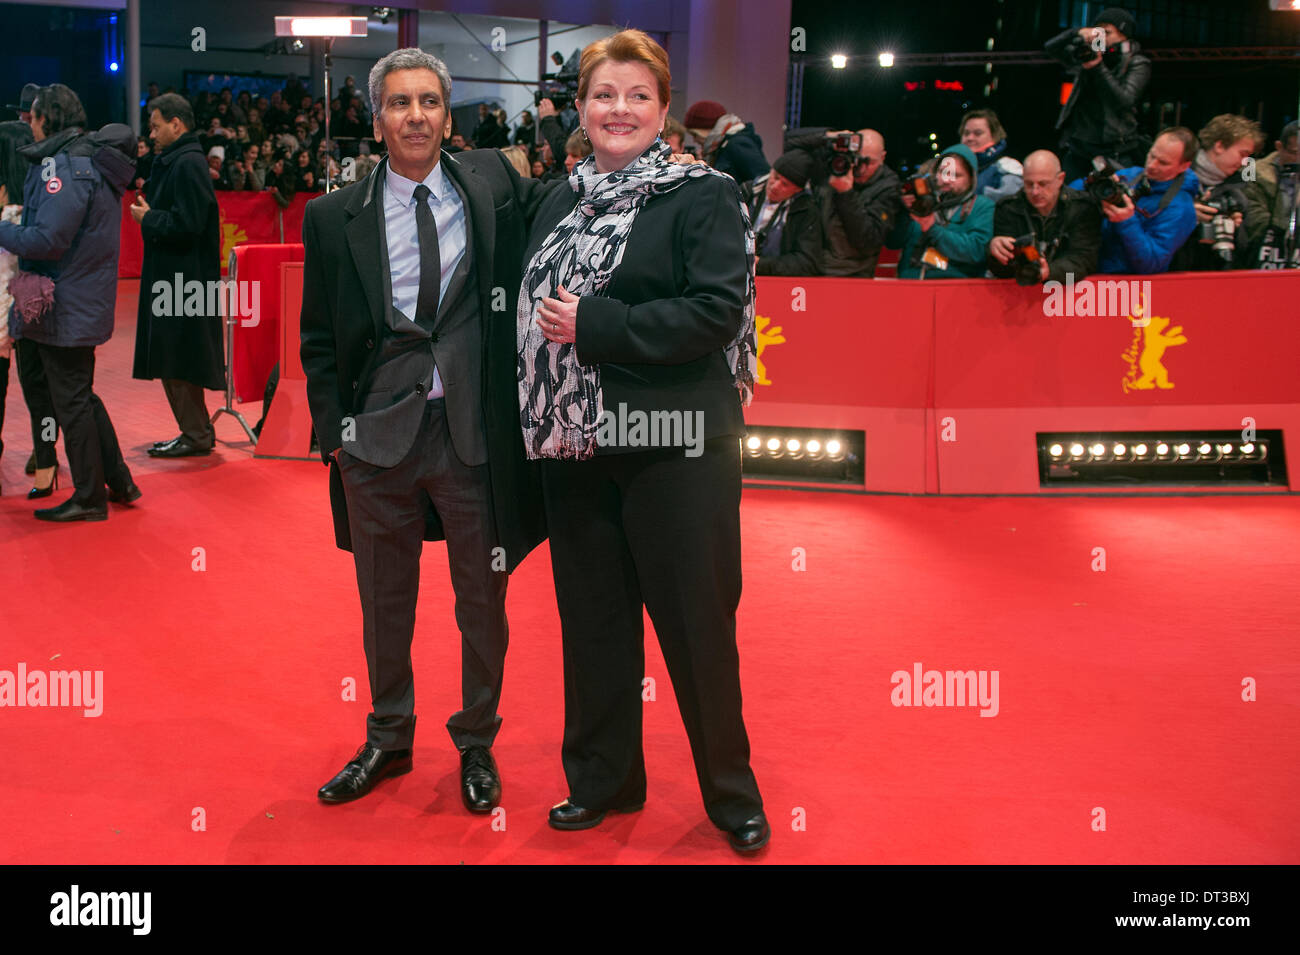 Berlin Roter Teppich Actress Brenda Blethyn Stockfotos And Actress Brenda Blethyn